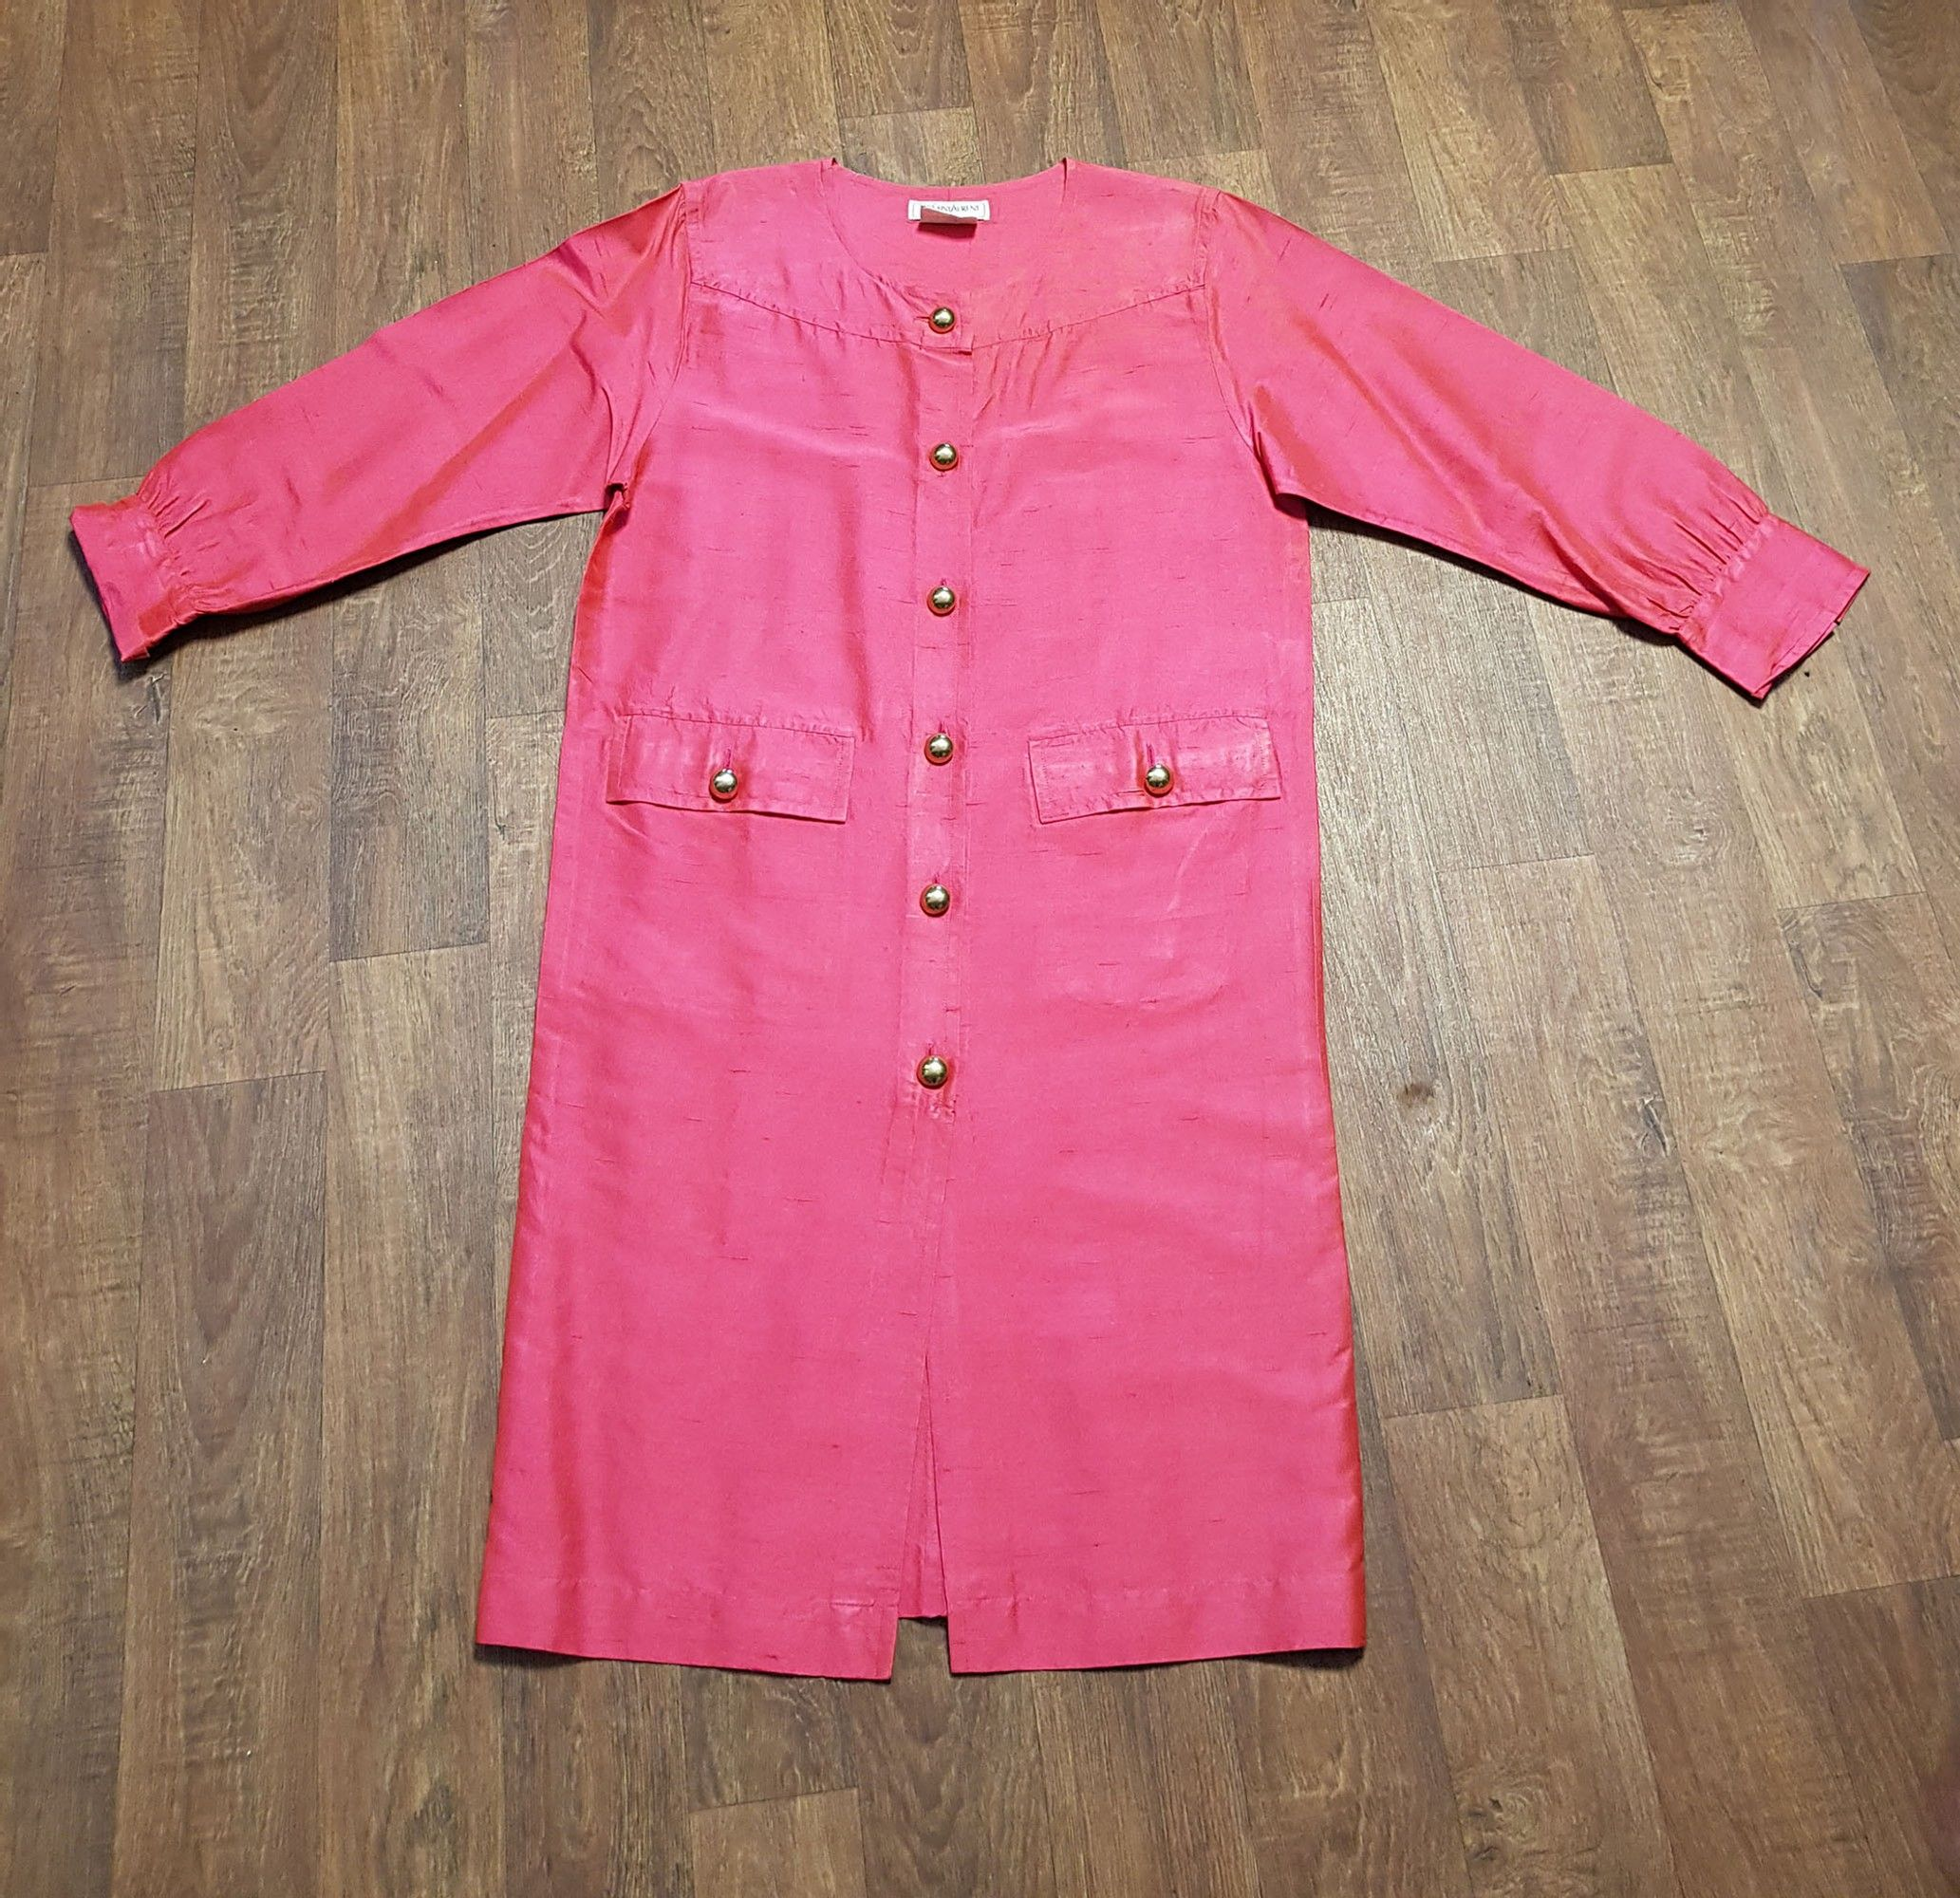 1980s Vintage YSL Hot Pink Silk Shirt Dress UK Size 14/16/18